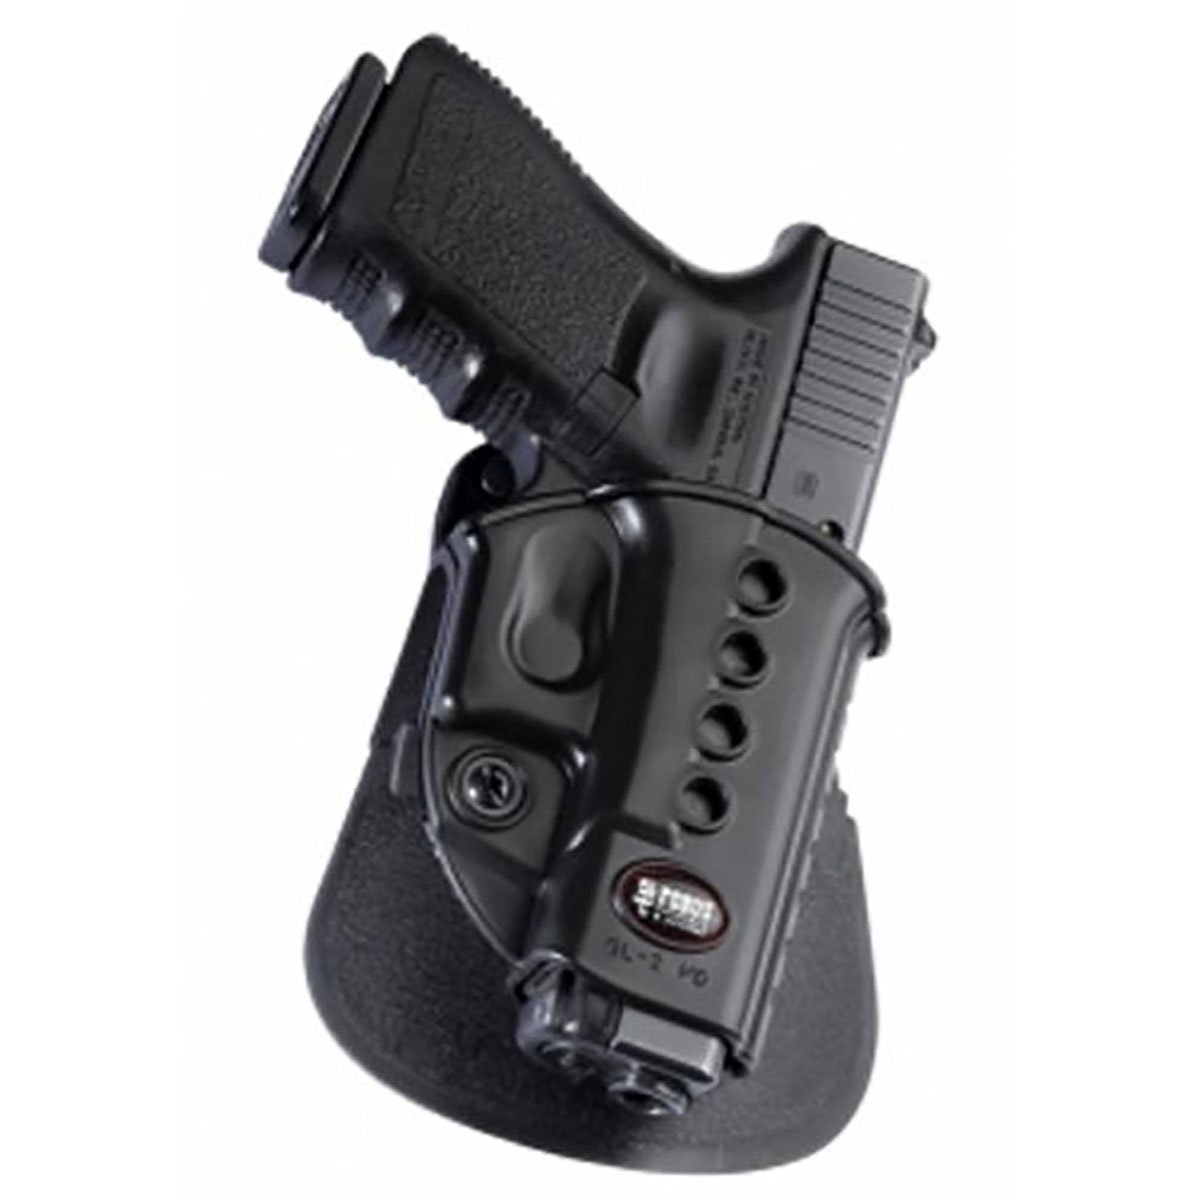 Fobus Standard Holster for Glock 34